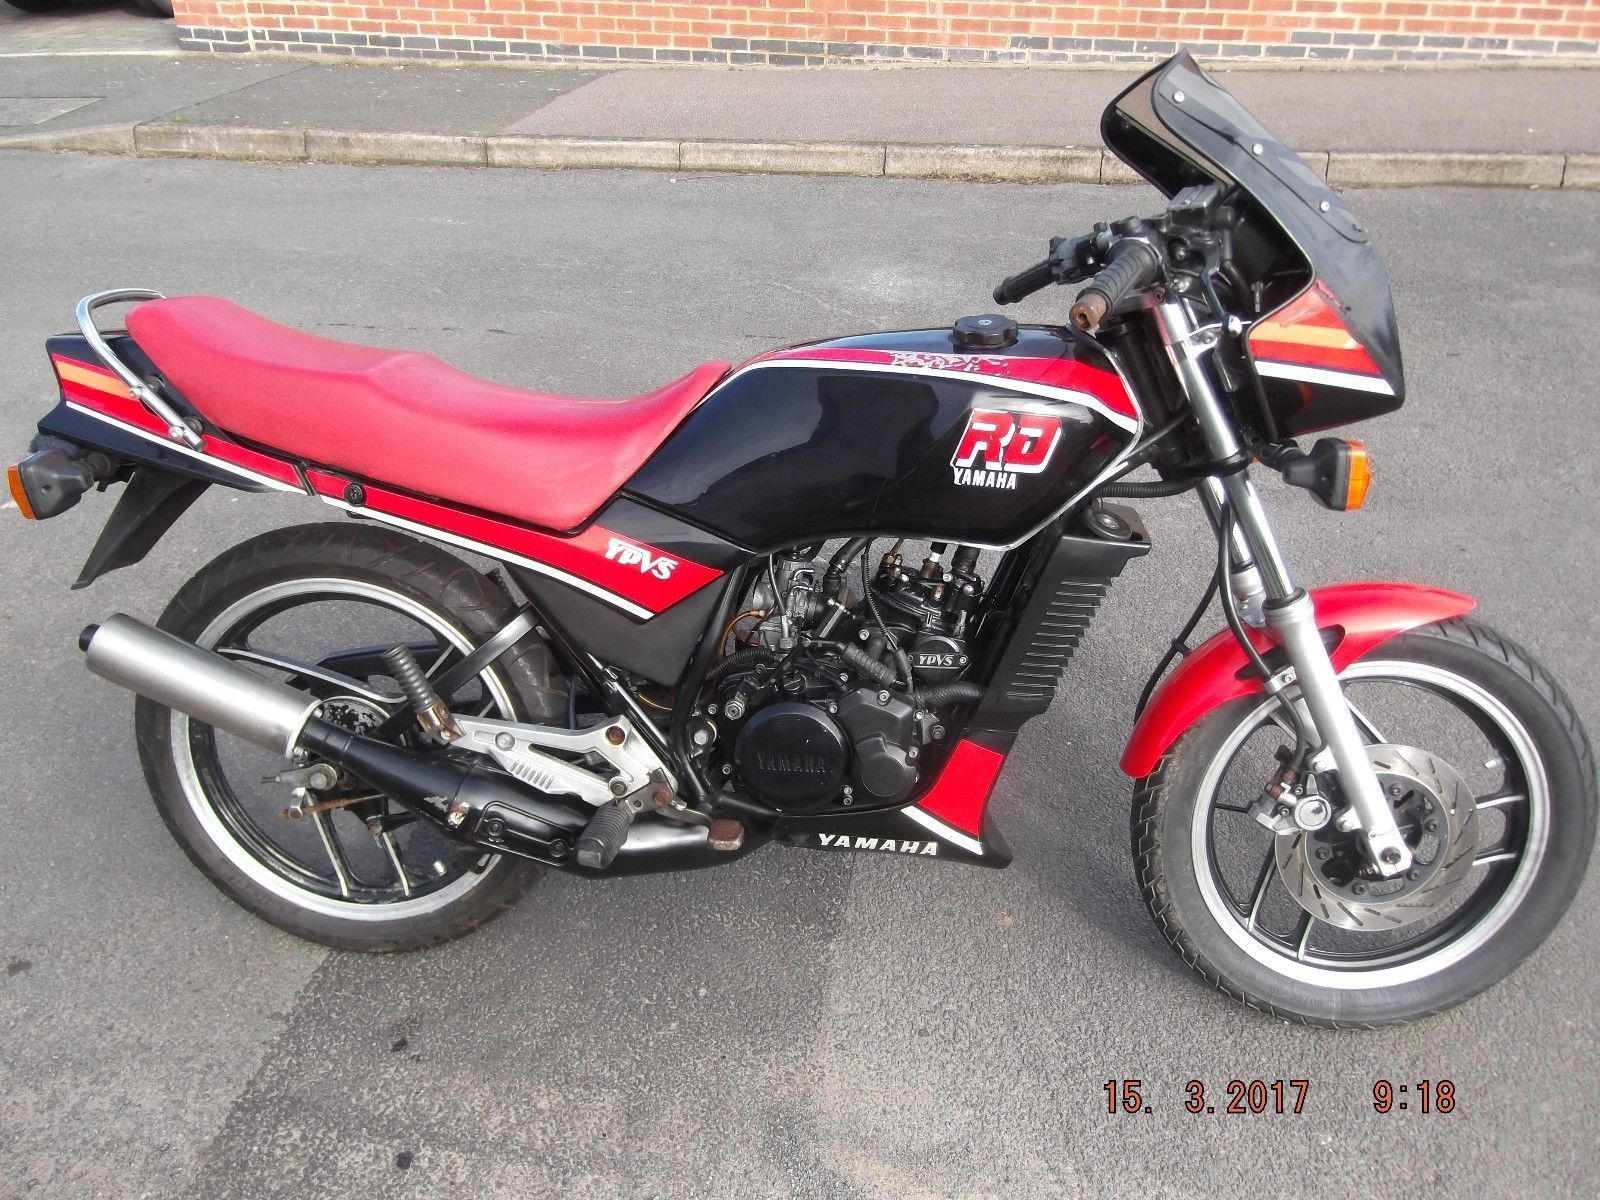 Yamaha Rd 125 Lc Restoration Spares Repairs Project Classic Yamaha Vintage Bikes Classic